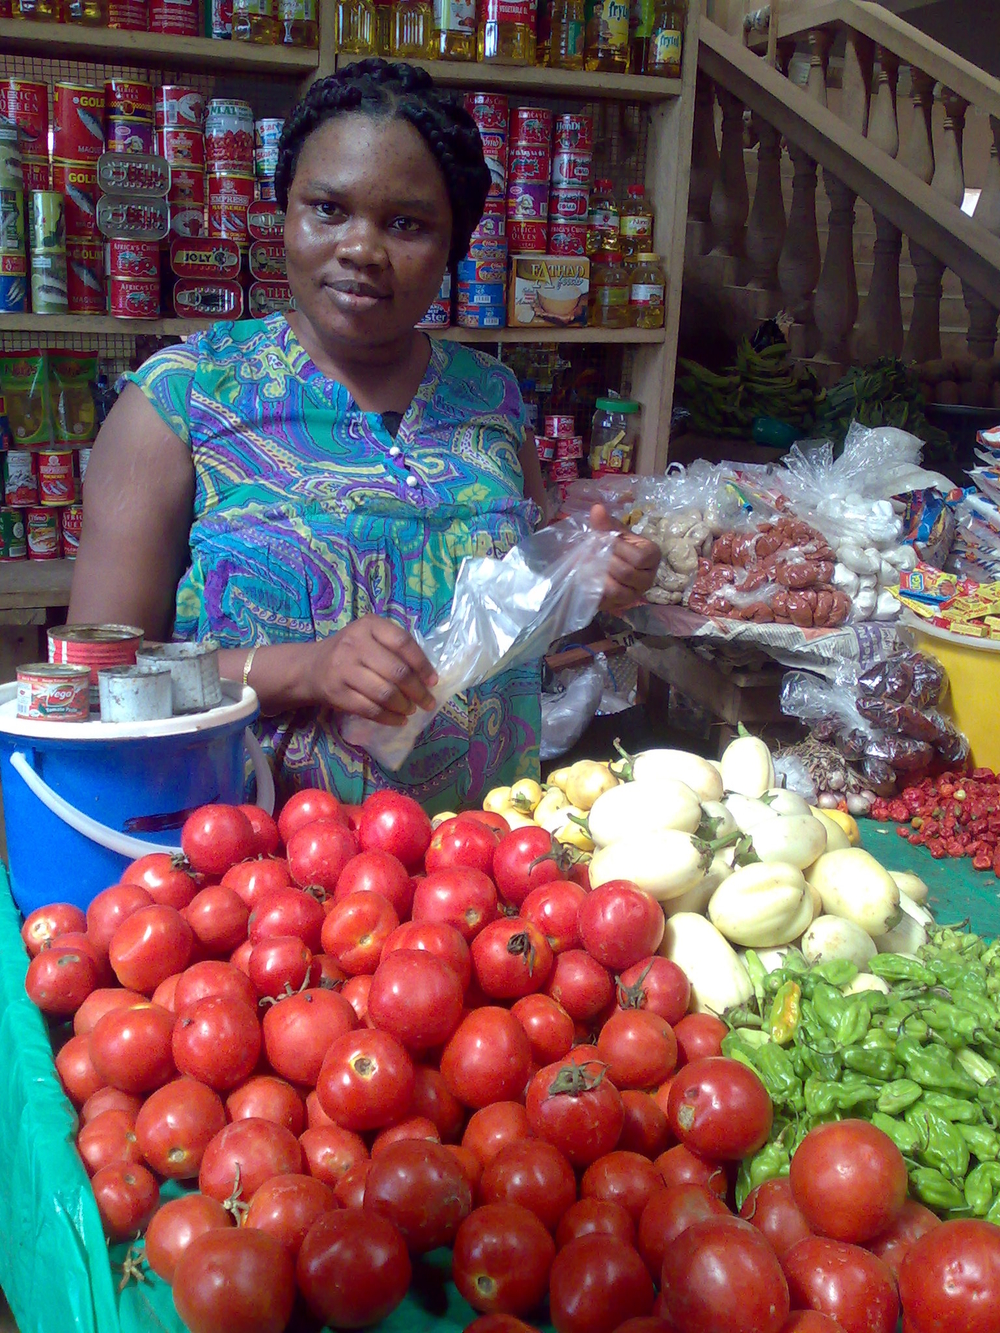 Maame Dufie, market queen at the Abeka Market in Accra. Market queens choose producers and set prices for agricultural goods in most of Ghana's markets.